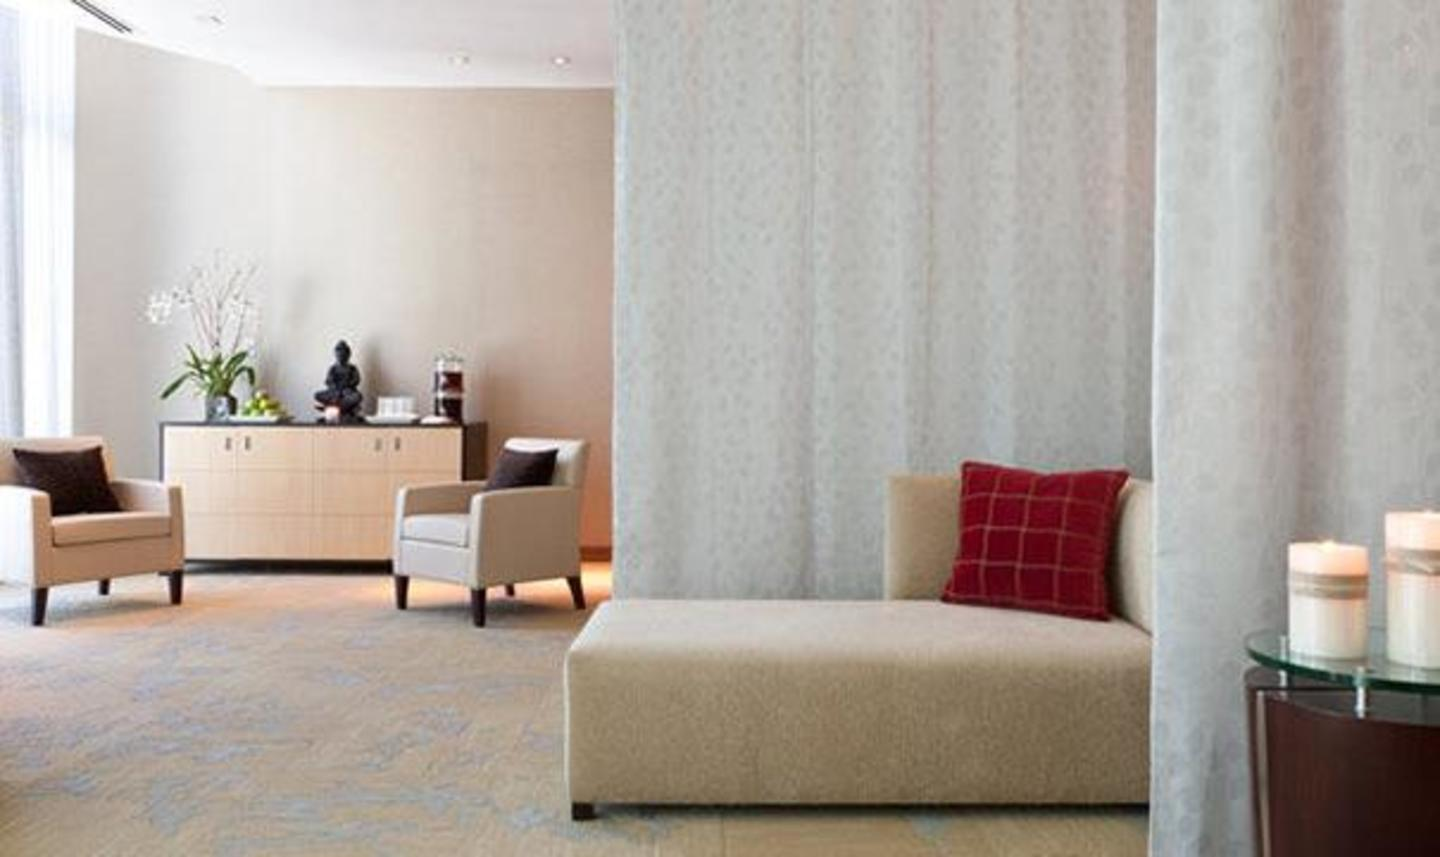 Relaxation room overlooking downtown Miami